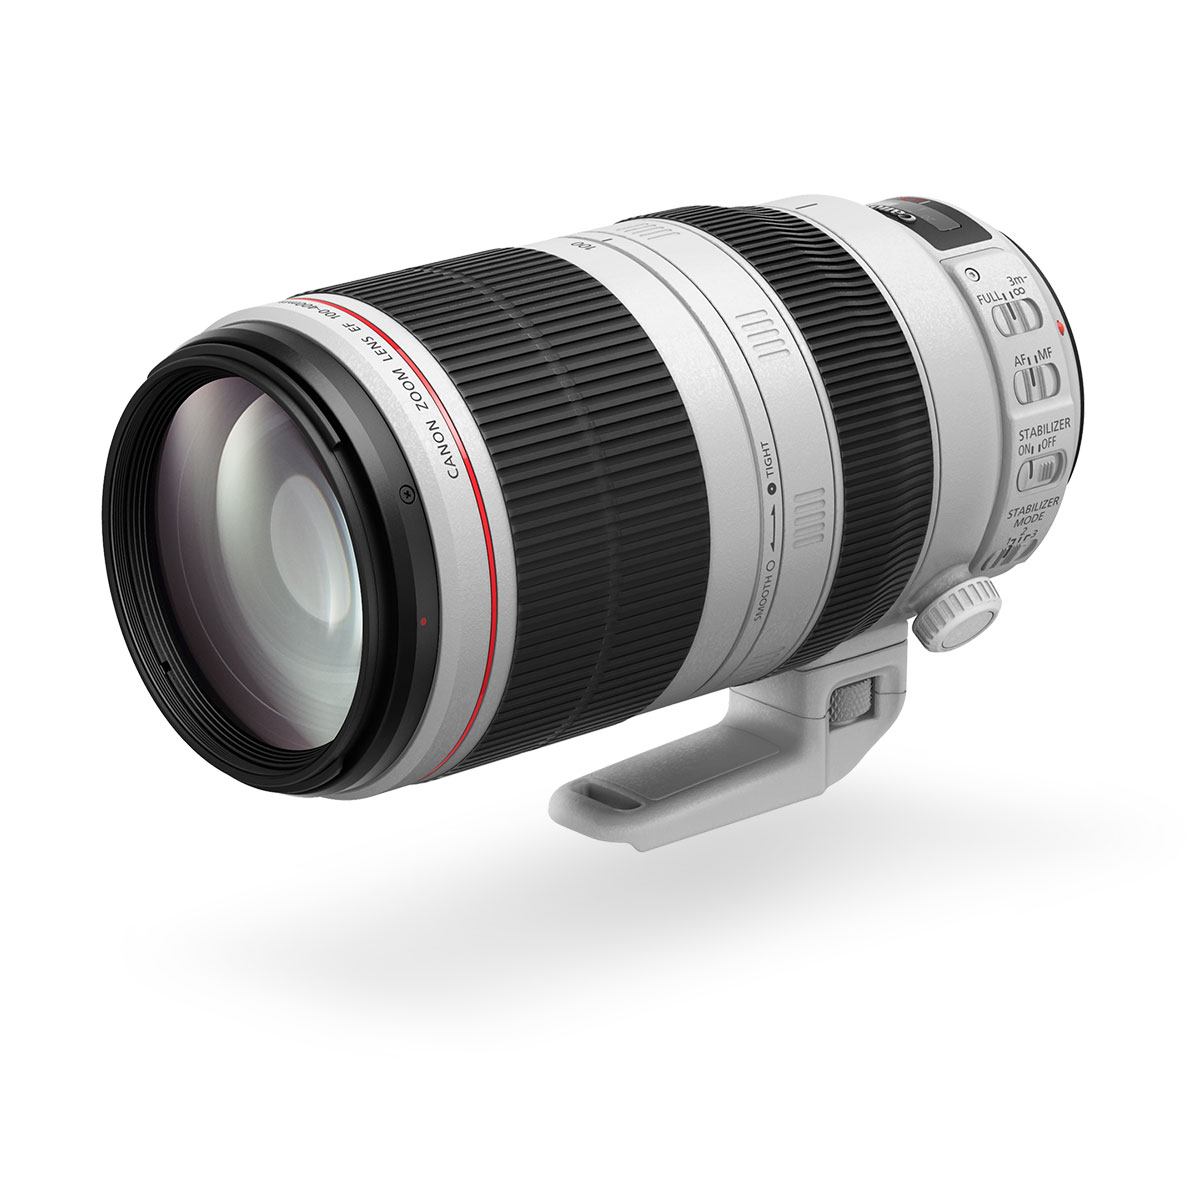 EF 100-400mm f/4.5-5.6L IS USM lens